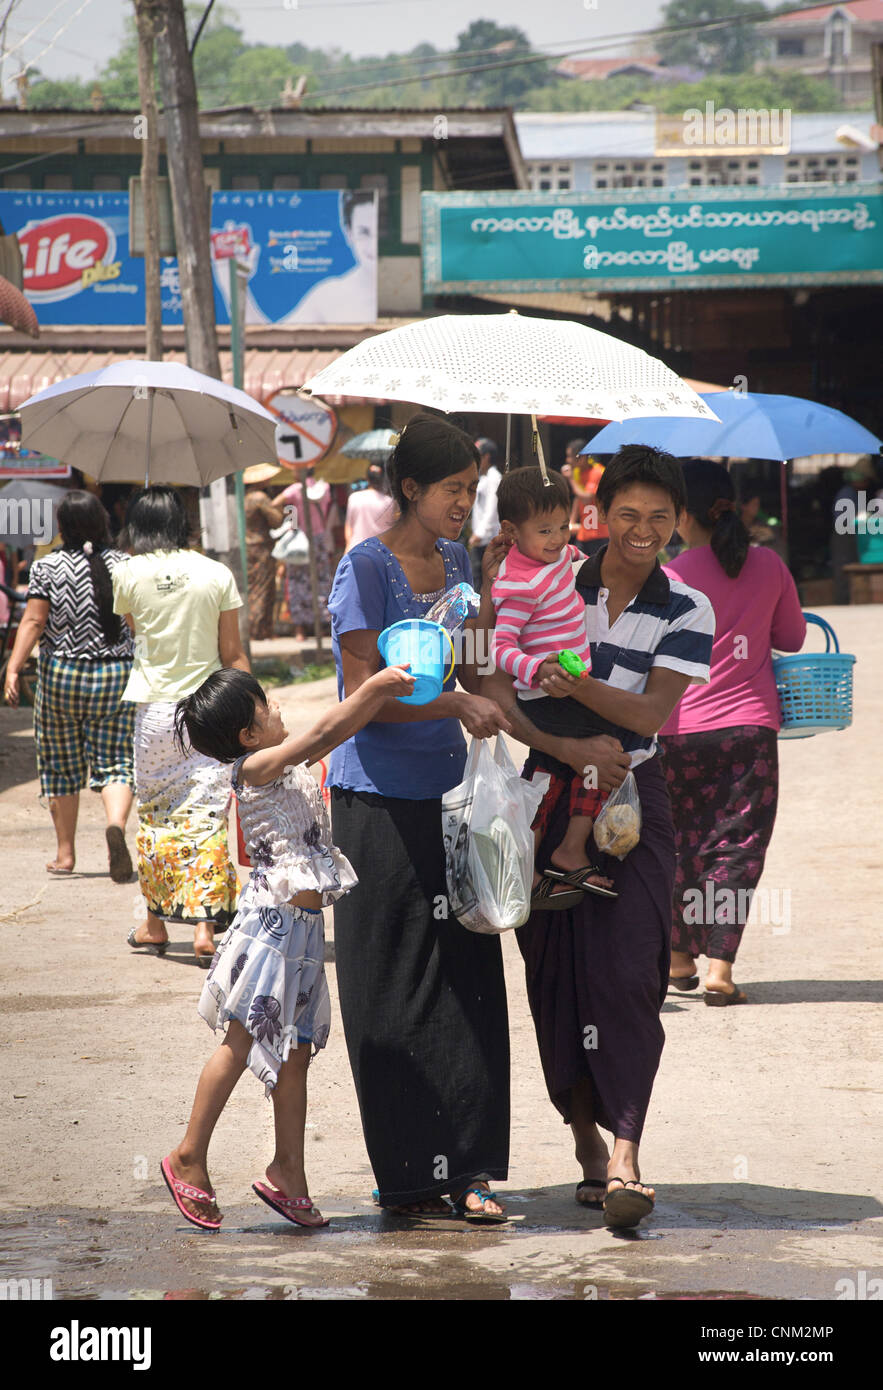 Burmese girl enjoying the water festival by throwing a bucket of water at a passing couple with child. Kalaw, Burma. - Stock Image